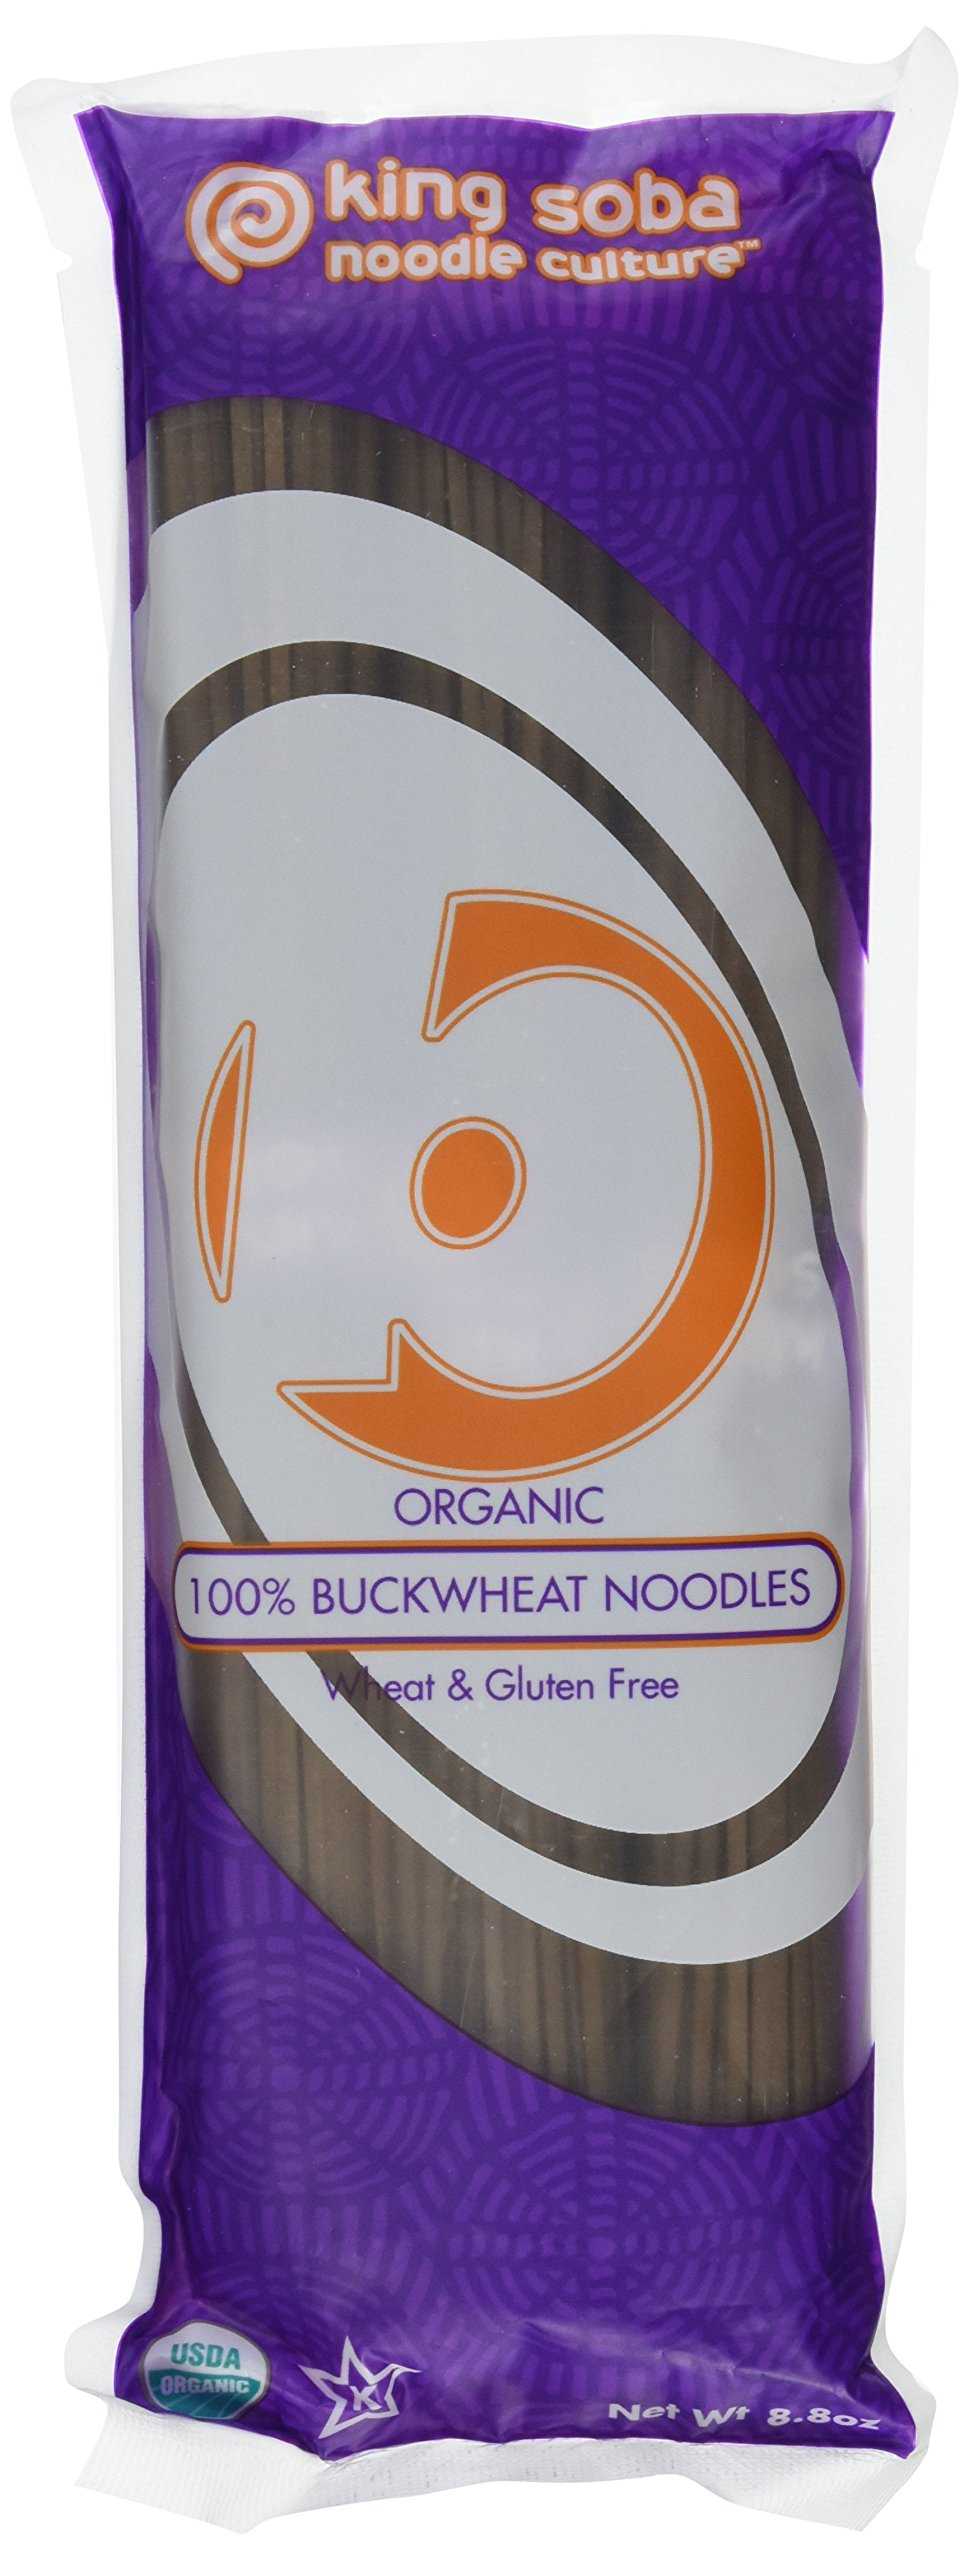 King Soba 3-PACK Gluten Free, Organic 100% Buckwheat Pasta Noodles - Sodium Free, 8.8oz - 3 servings per package